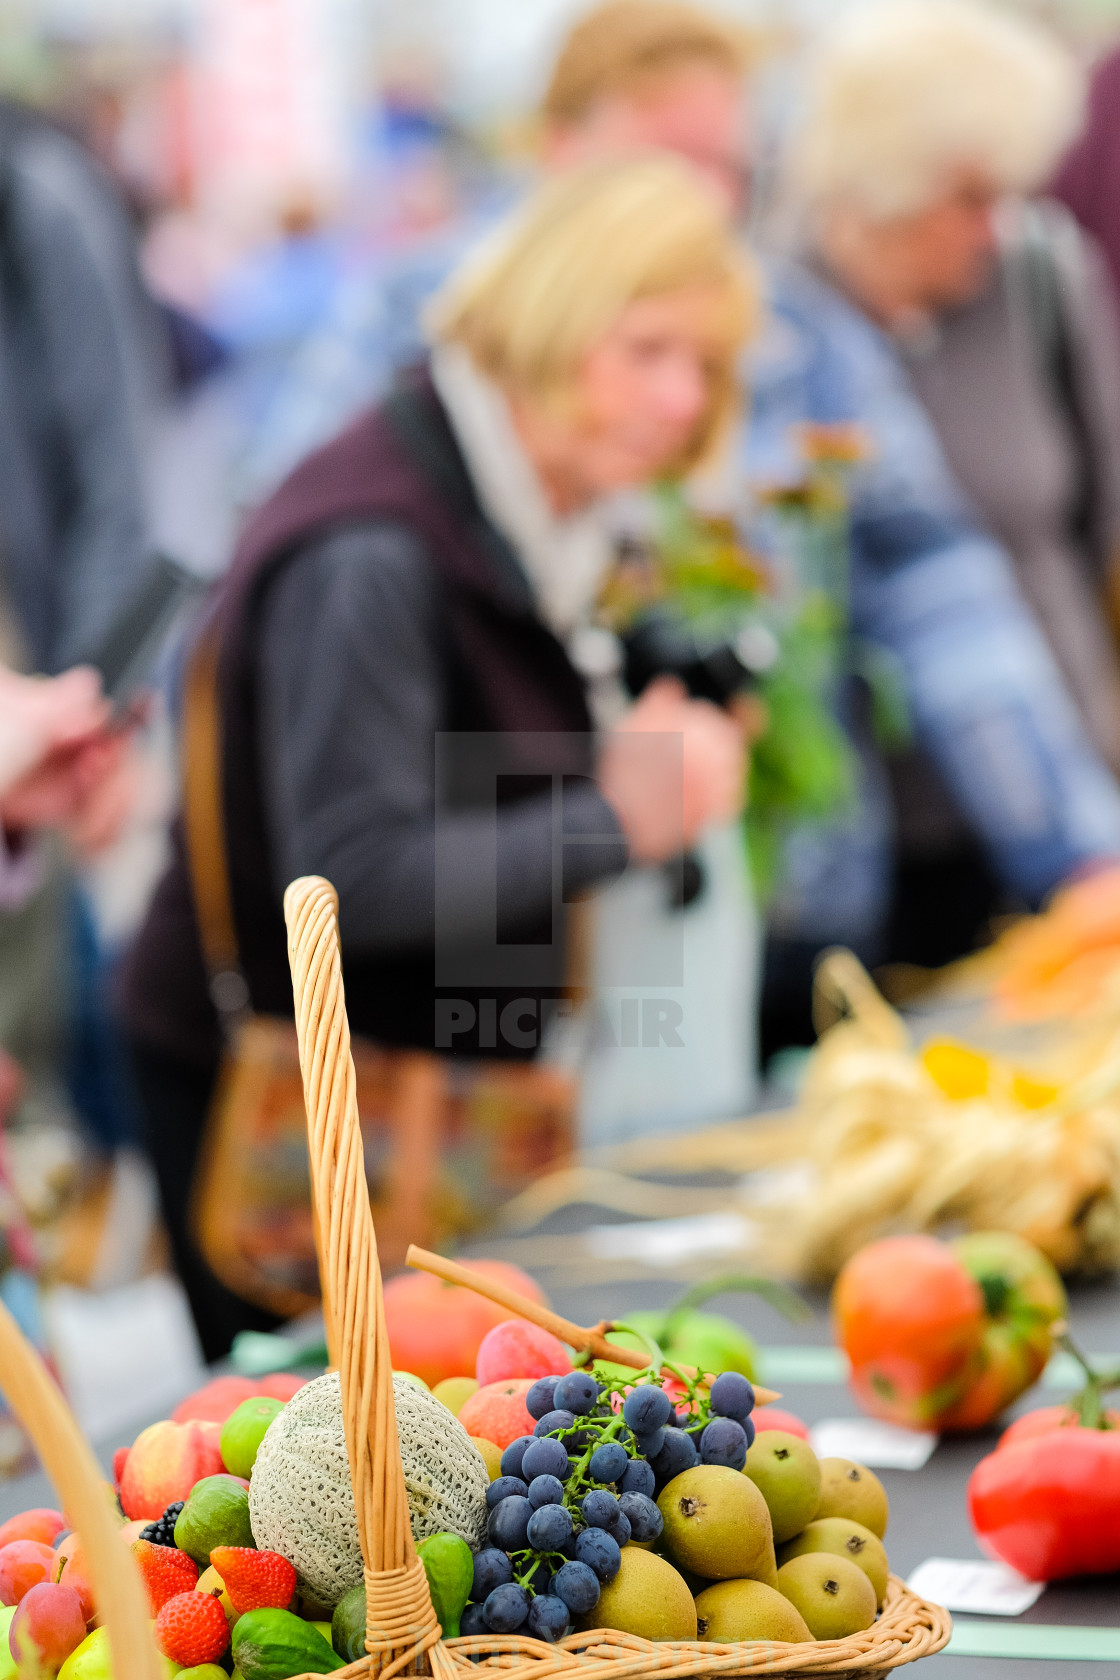 """Fruit basket at show"" stock image"